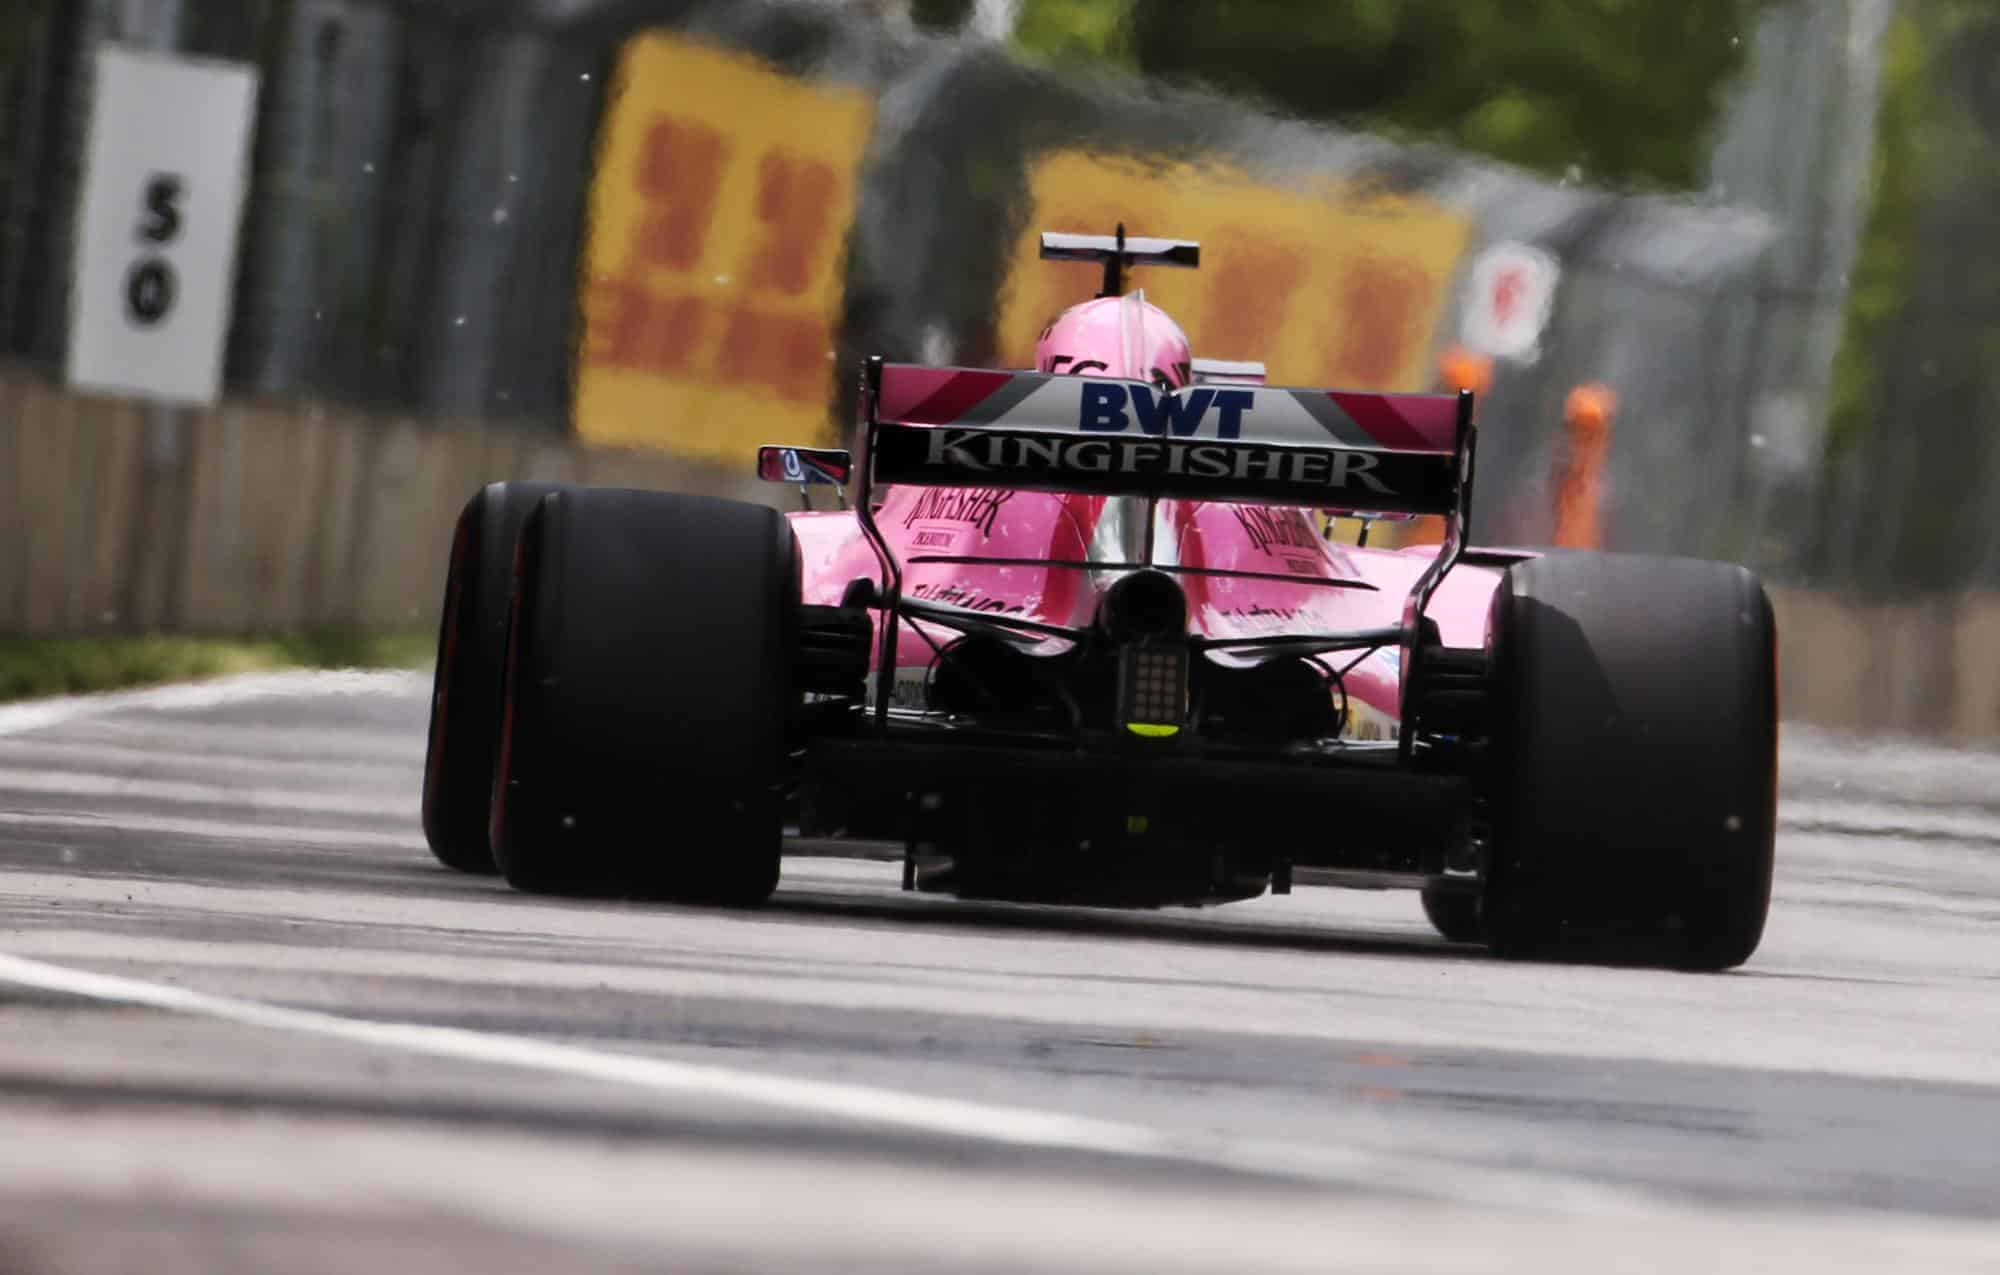 2018 Canadian GP – Perez set new top speed record in F1 2018